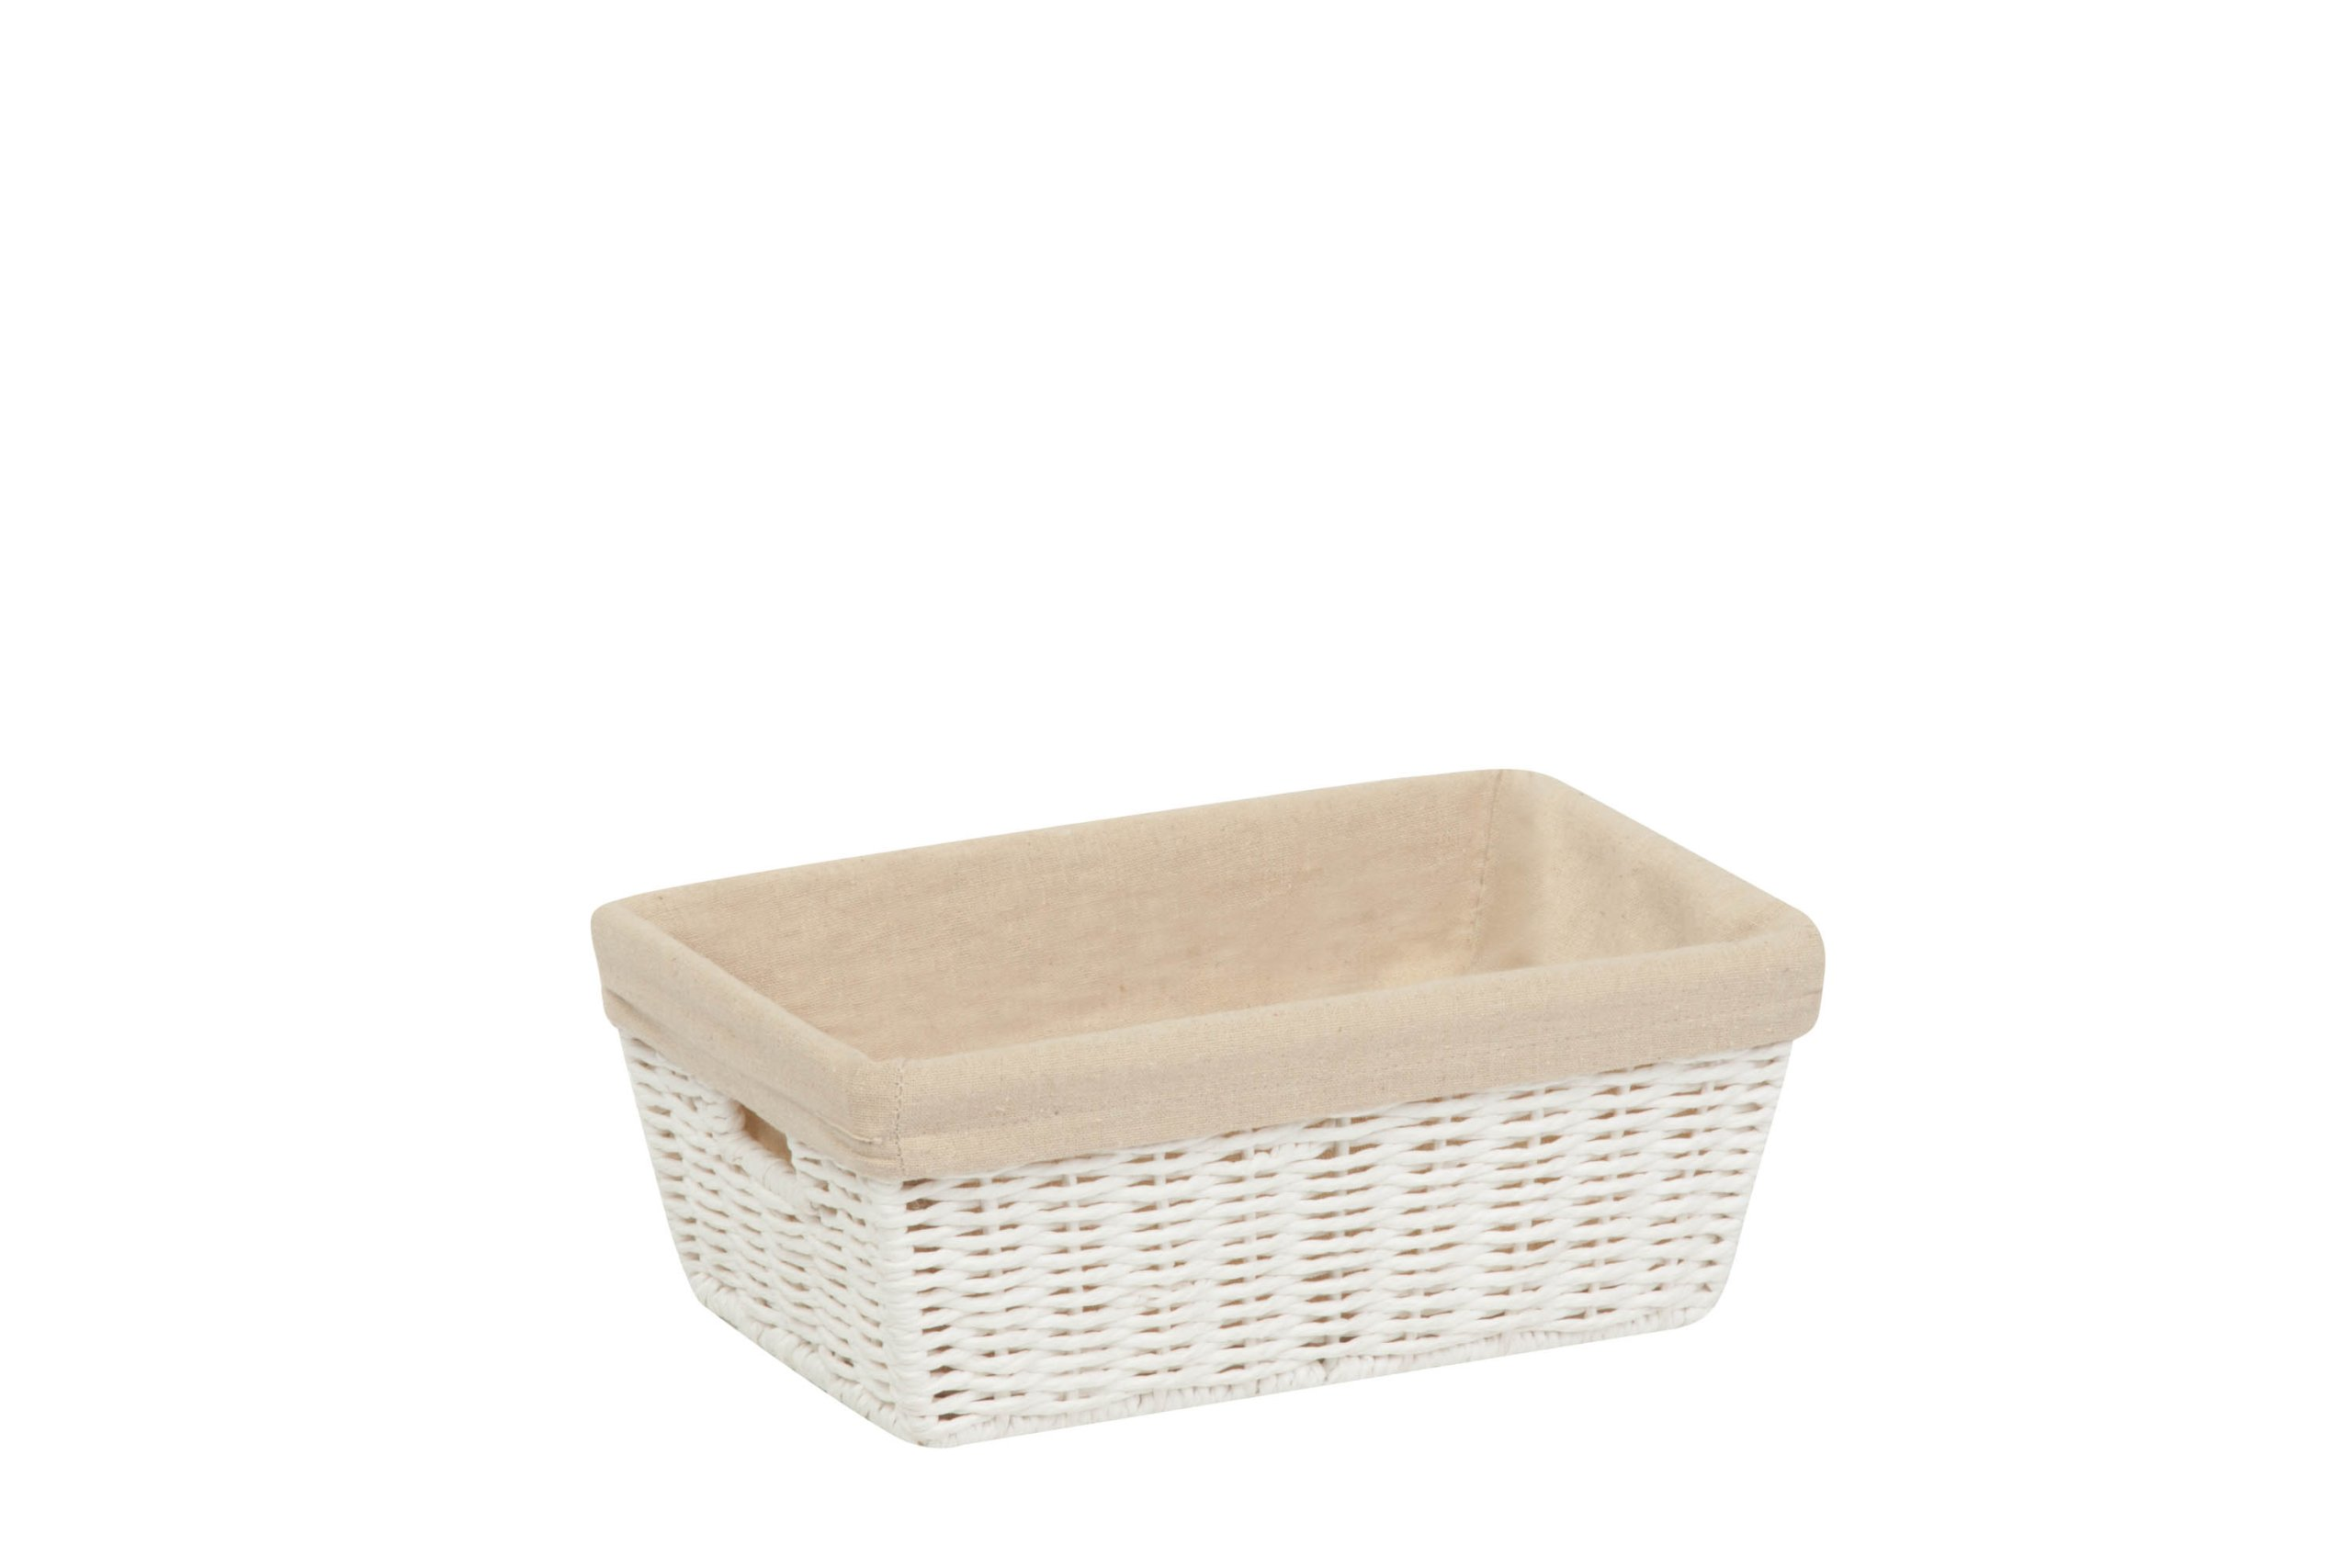 Honey-Can-Do STO-03558 Parchment Cord Basket with Handles and Liner, 6.5 by 11 by 4.5-Inch